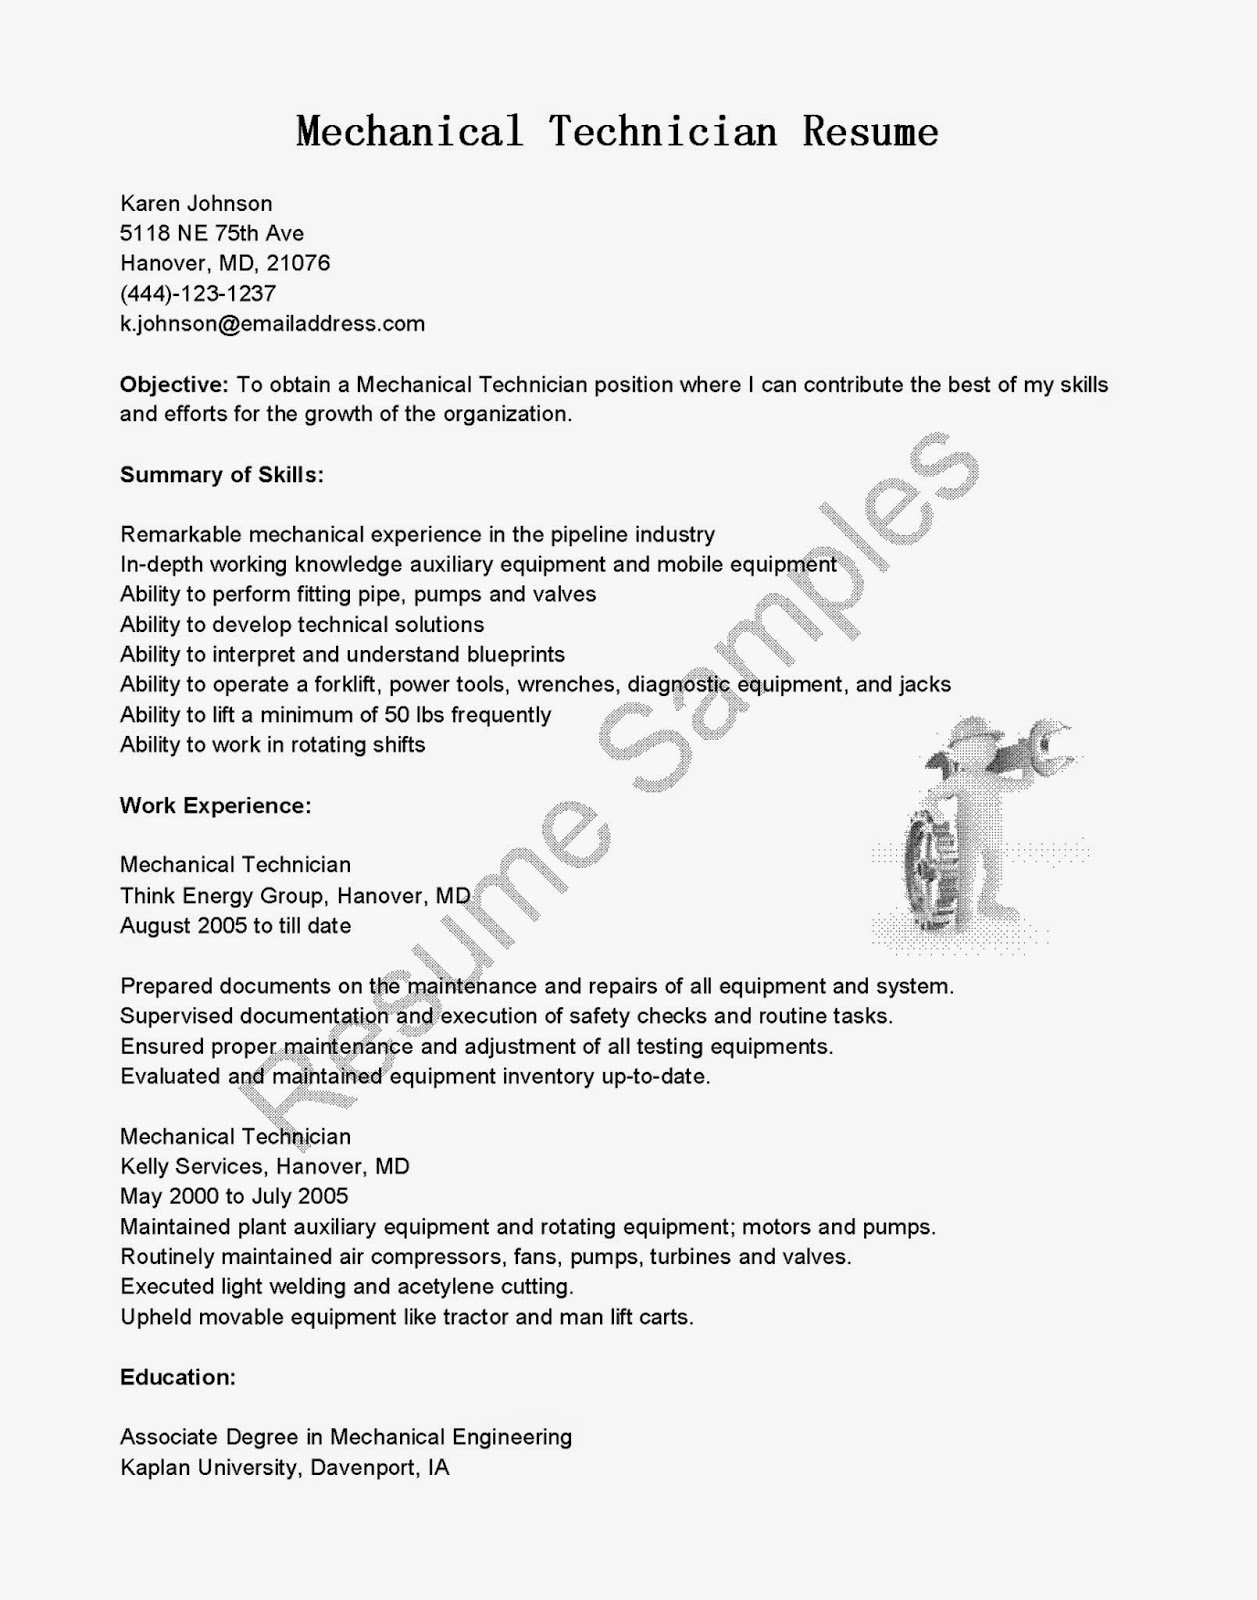 kpmg cover letter kpmg audit associate resume example kpmg graduate cover letter amanda cover letter for - Cover Letter For Resume Examples For Students